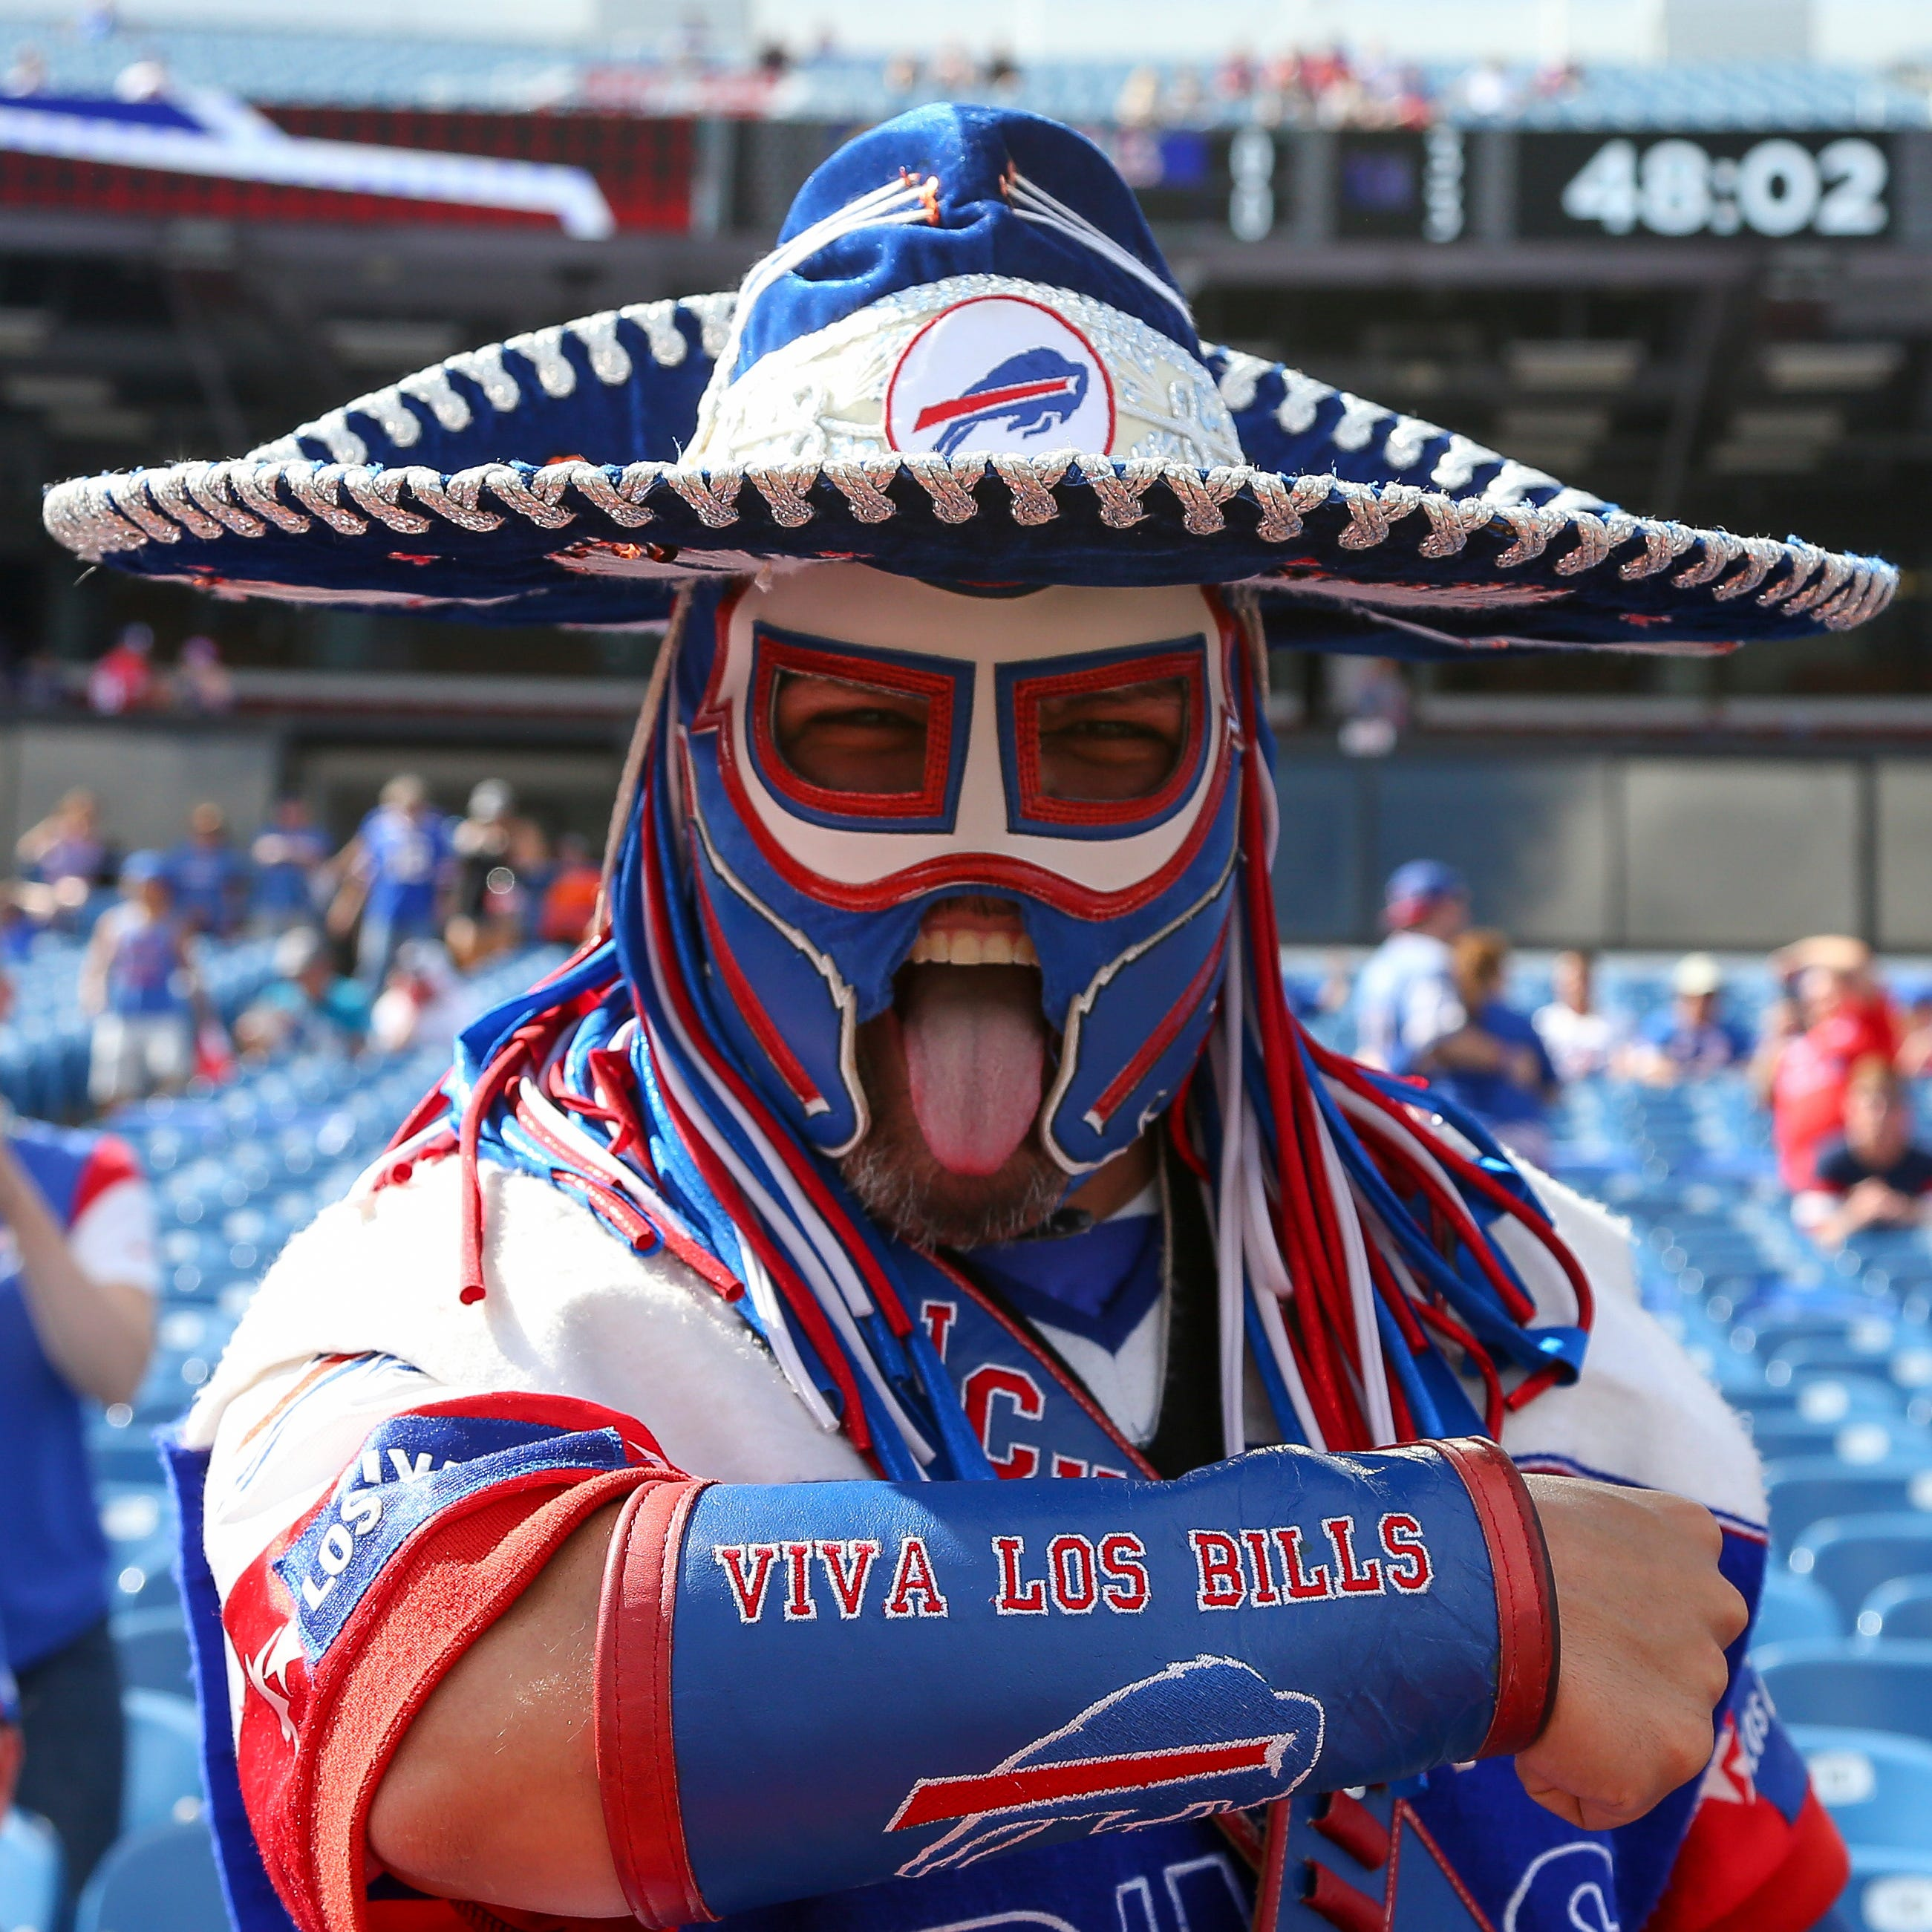 Buffalo Bills players and fans celebrate the life of Pancho Billa on Twitter